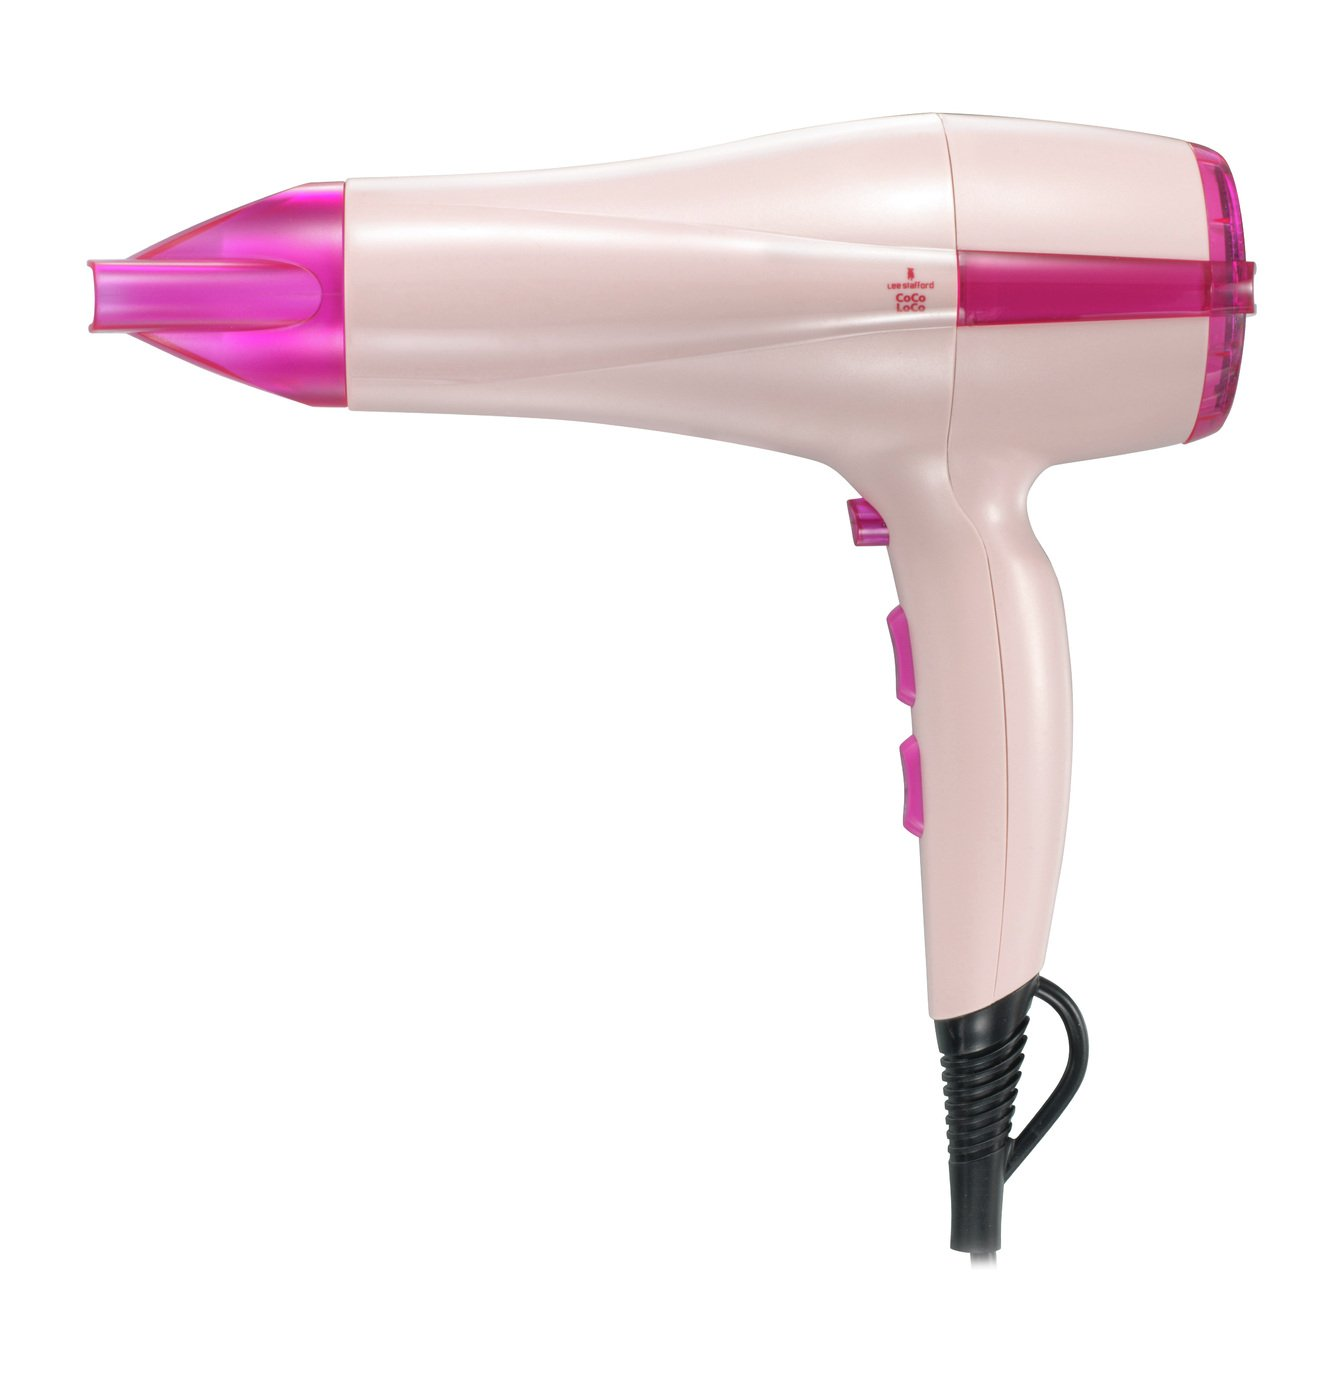 Lee Stafford Coco Loco Hair Dryer with Diffuser